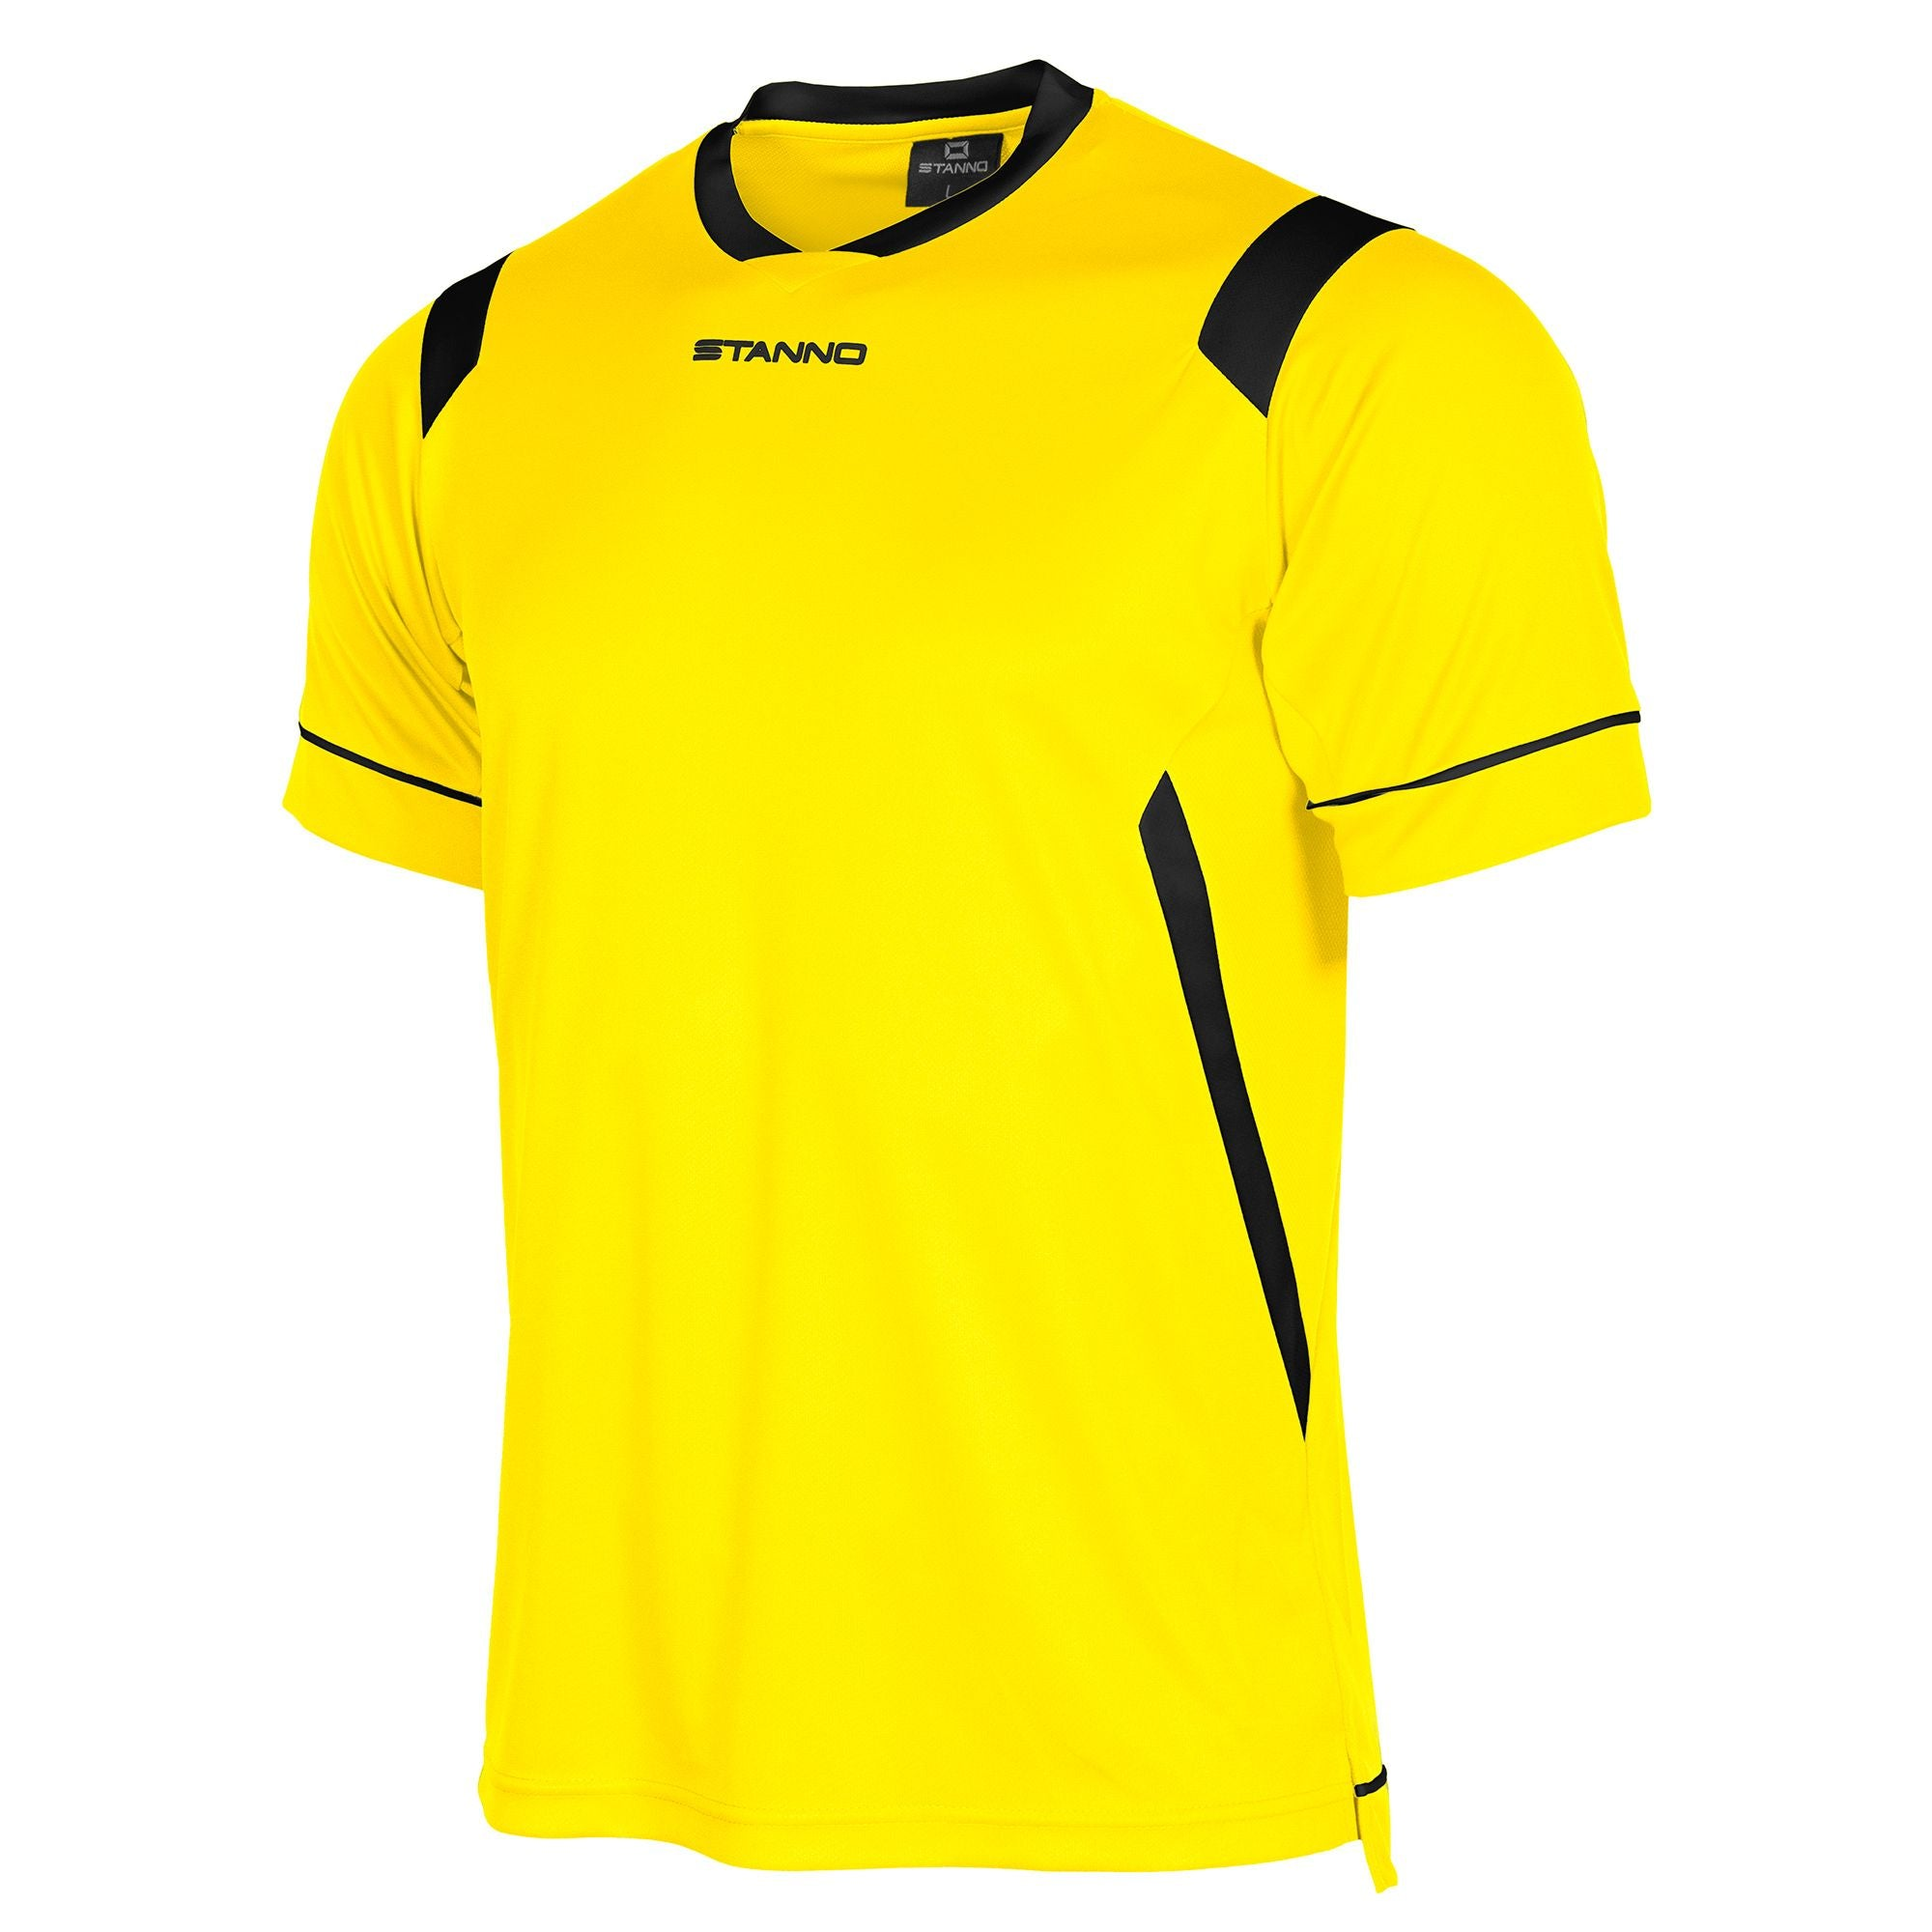 Stanno Arezzo short sleeved shirt in yellow with black contrast collar, and stripe detail on shoulders and sides.